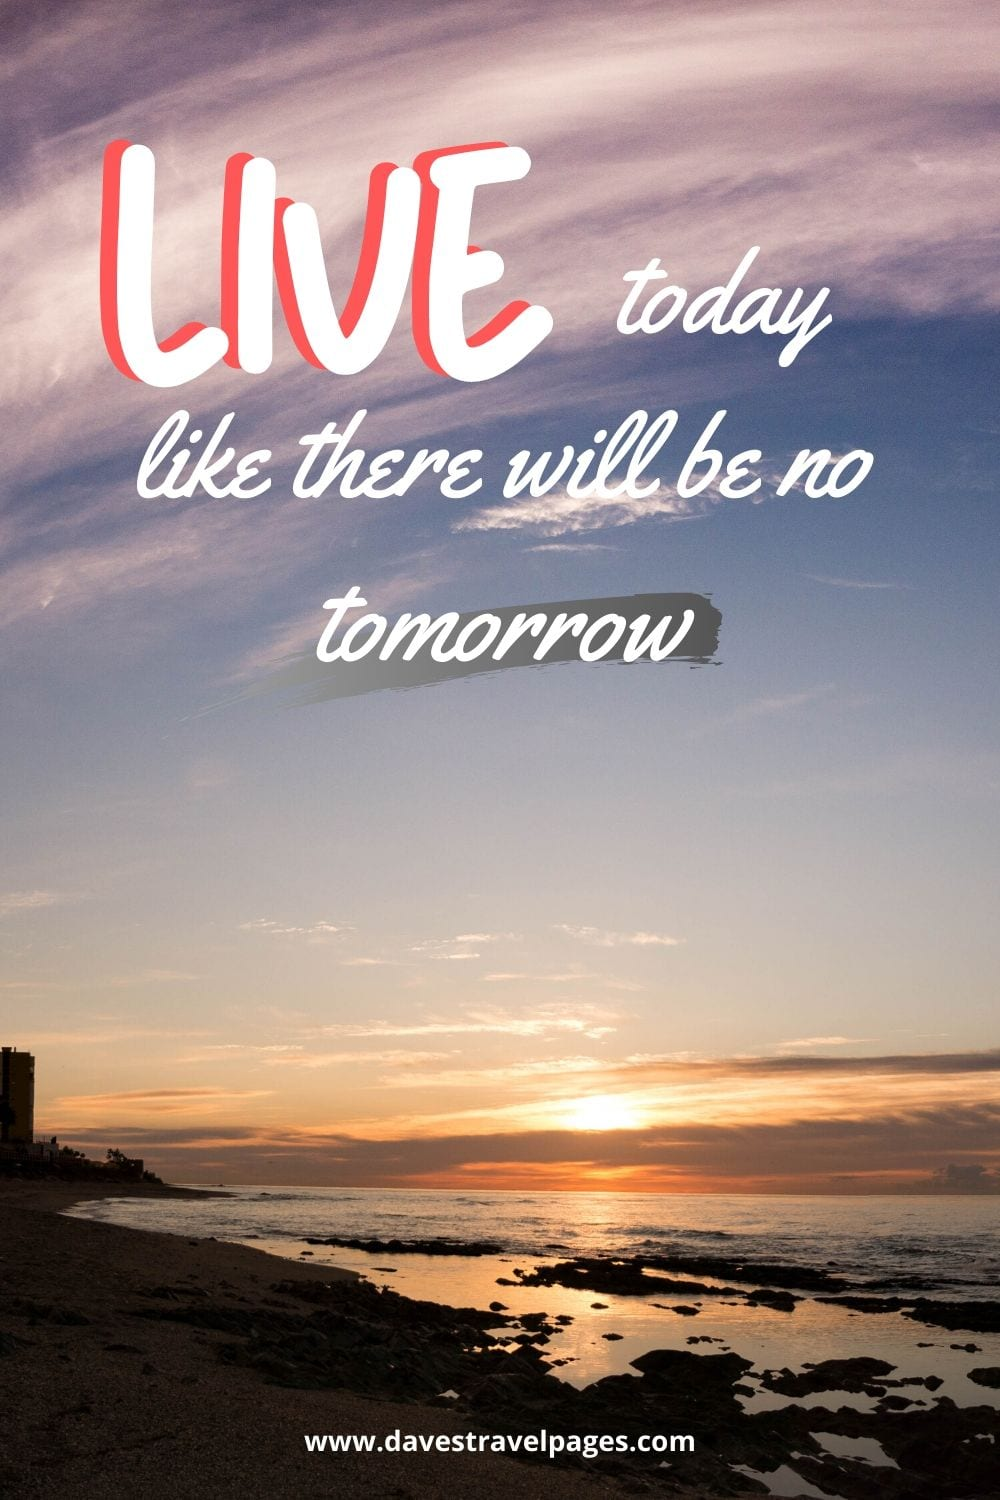 Inspiring Captions: Live today like there will be no tomorrow.